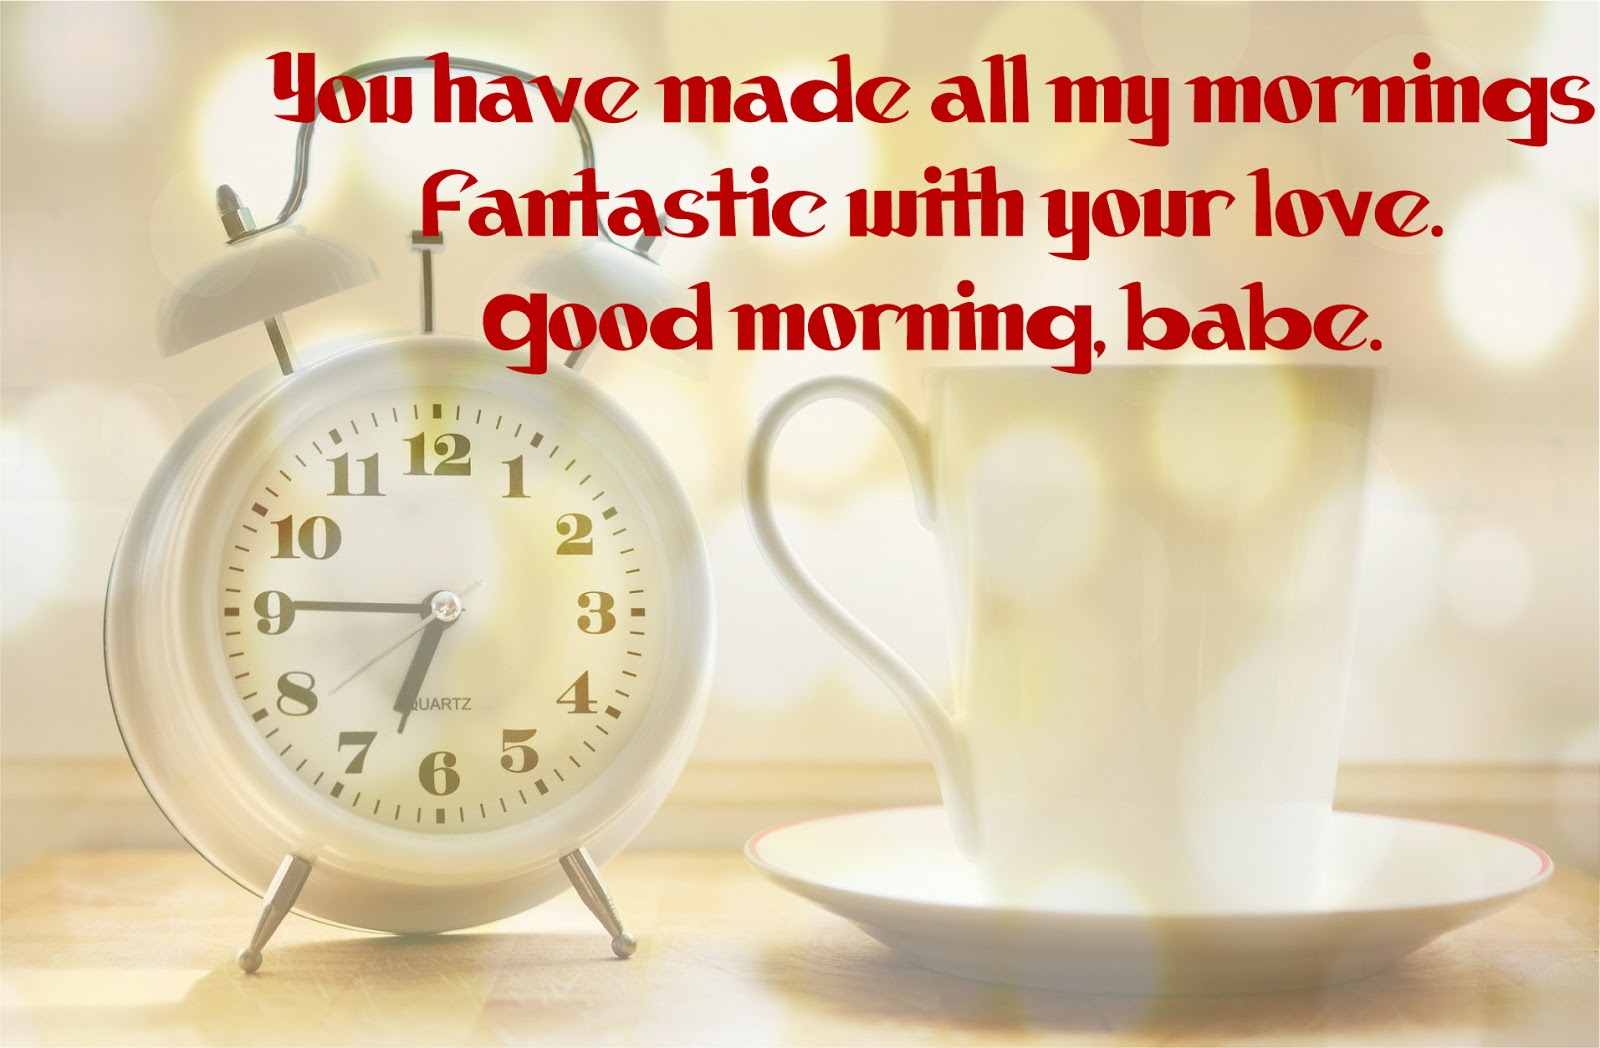 Good morning messages for a lovely girlfriend